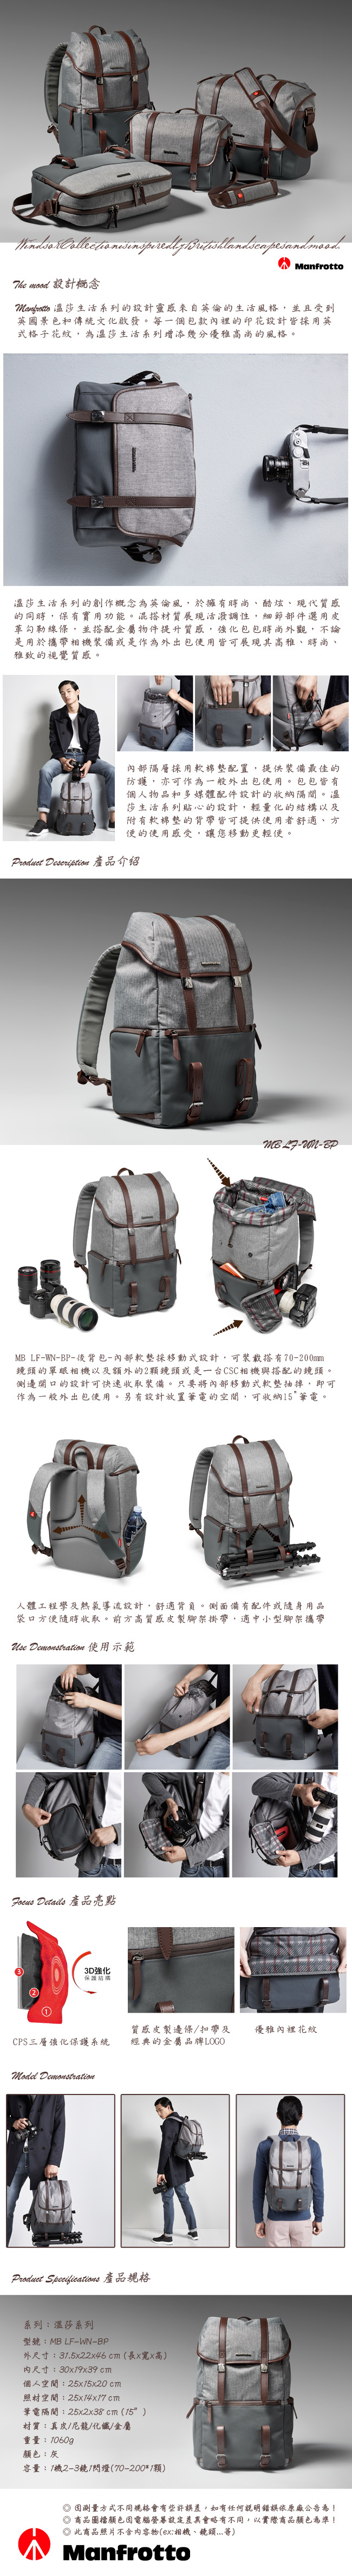 Manfrotto 溫莎生活系列記者包 Lifestyle Windsor Reporter